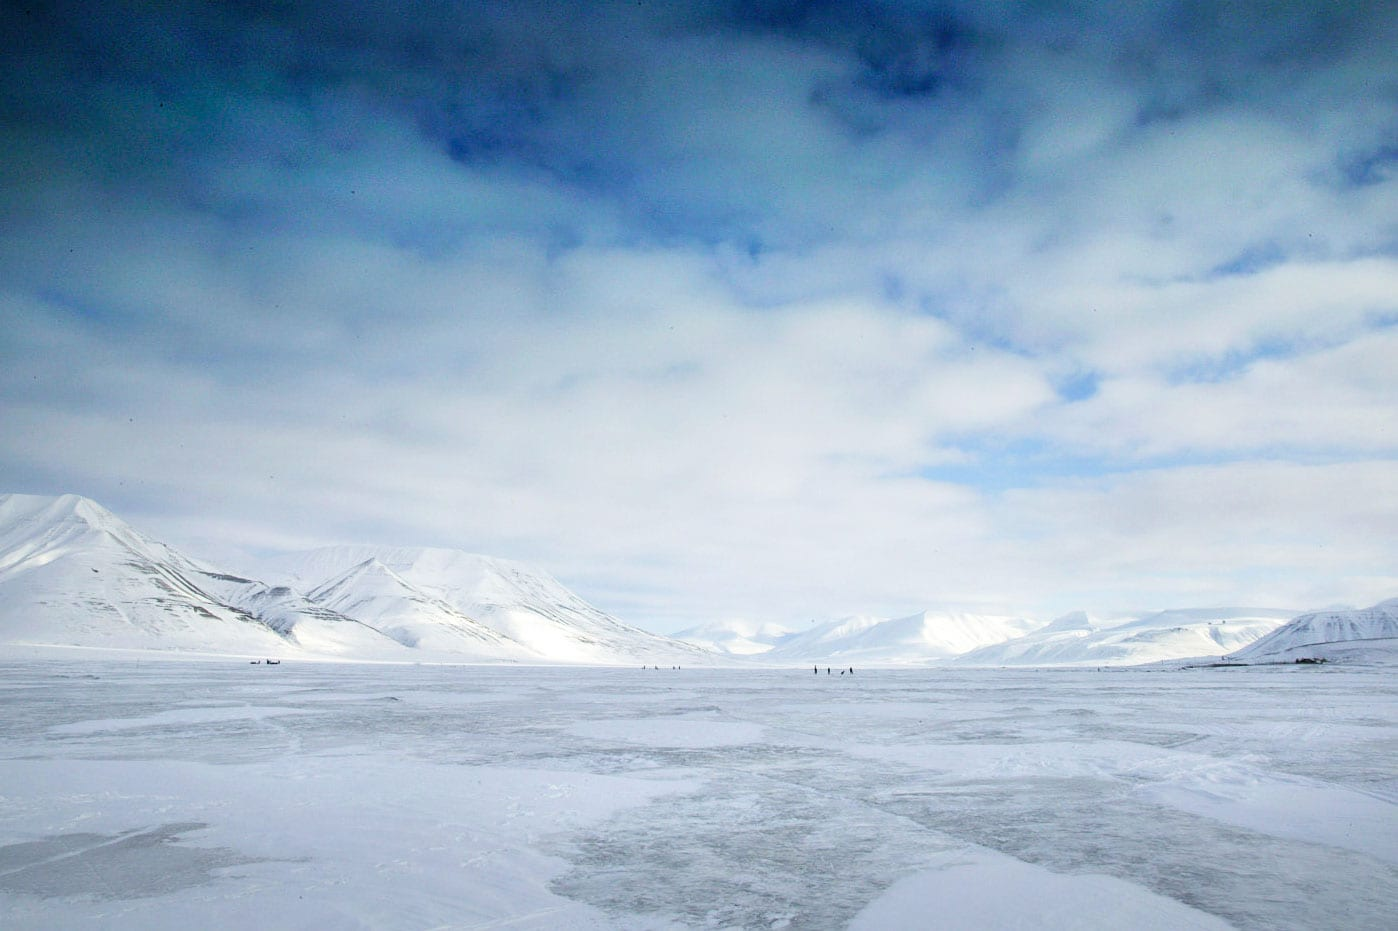 GitHub will store all of its public open source code in an Arctic vault